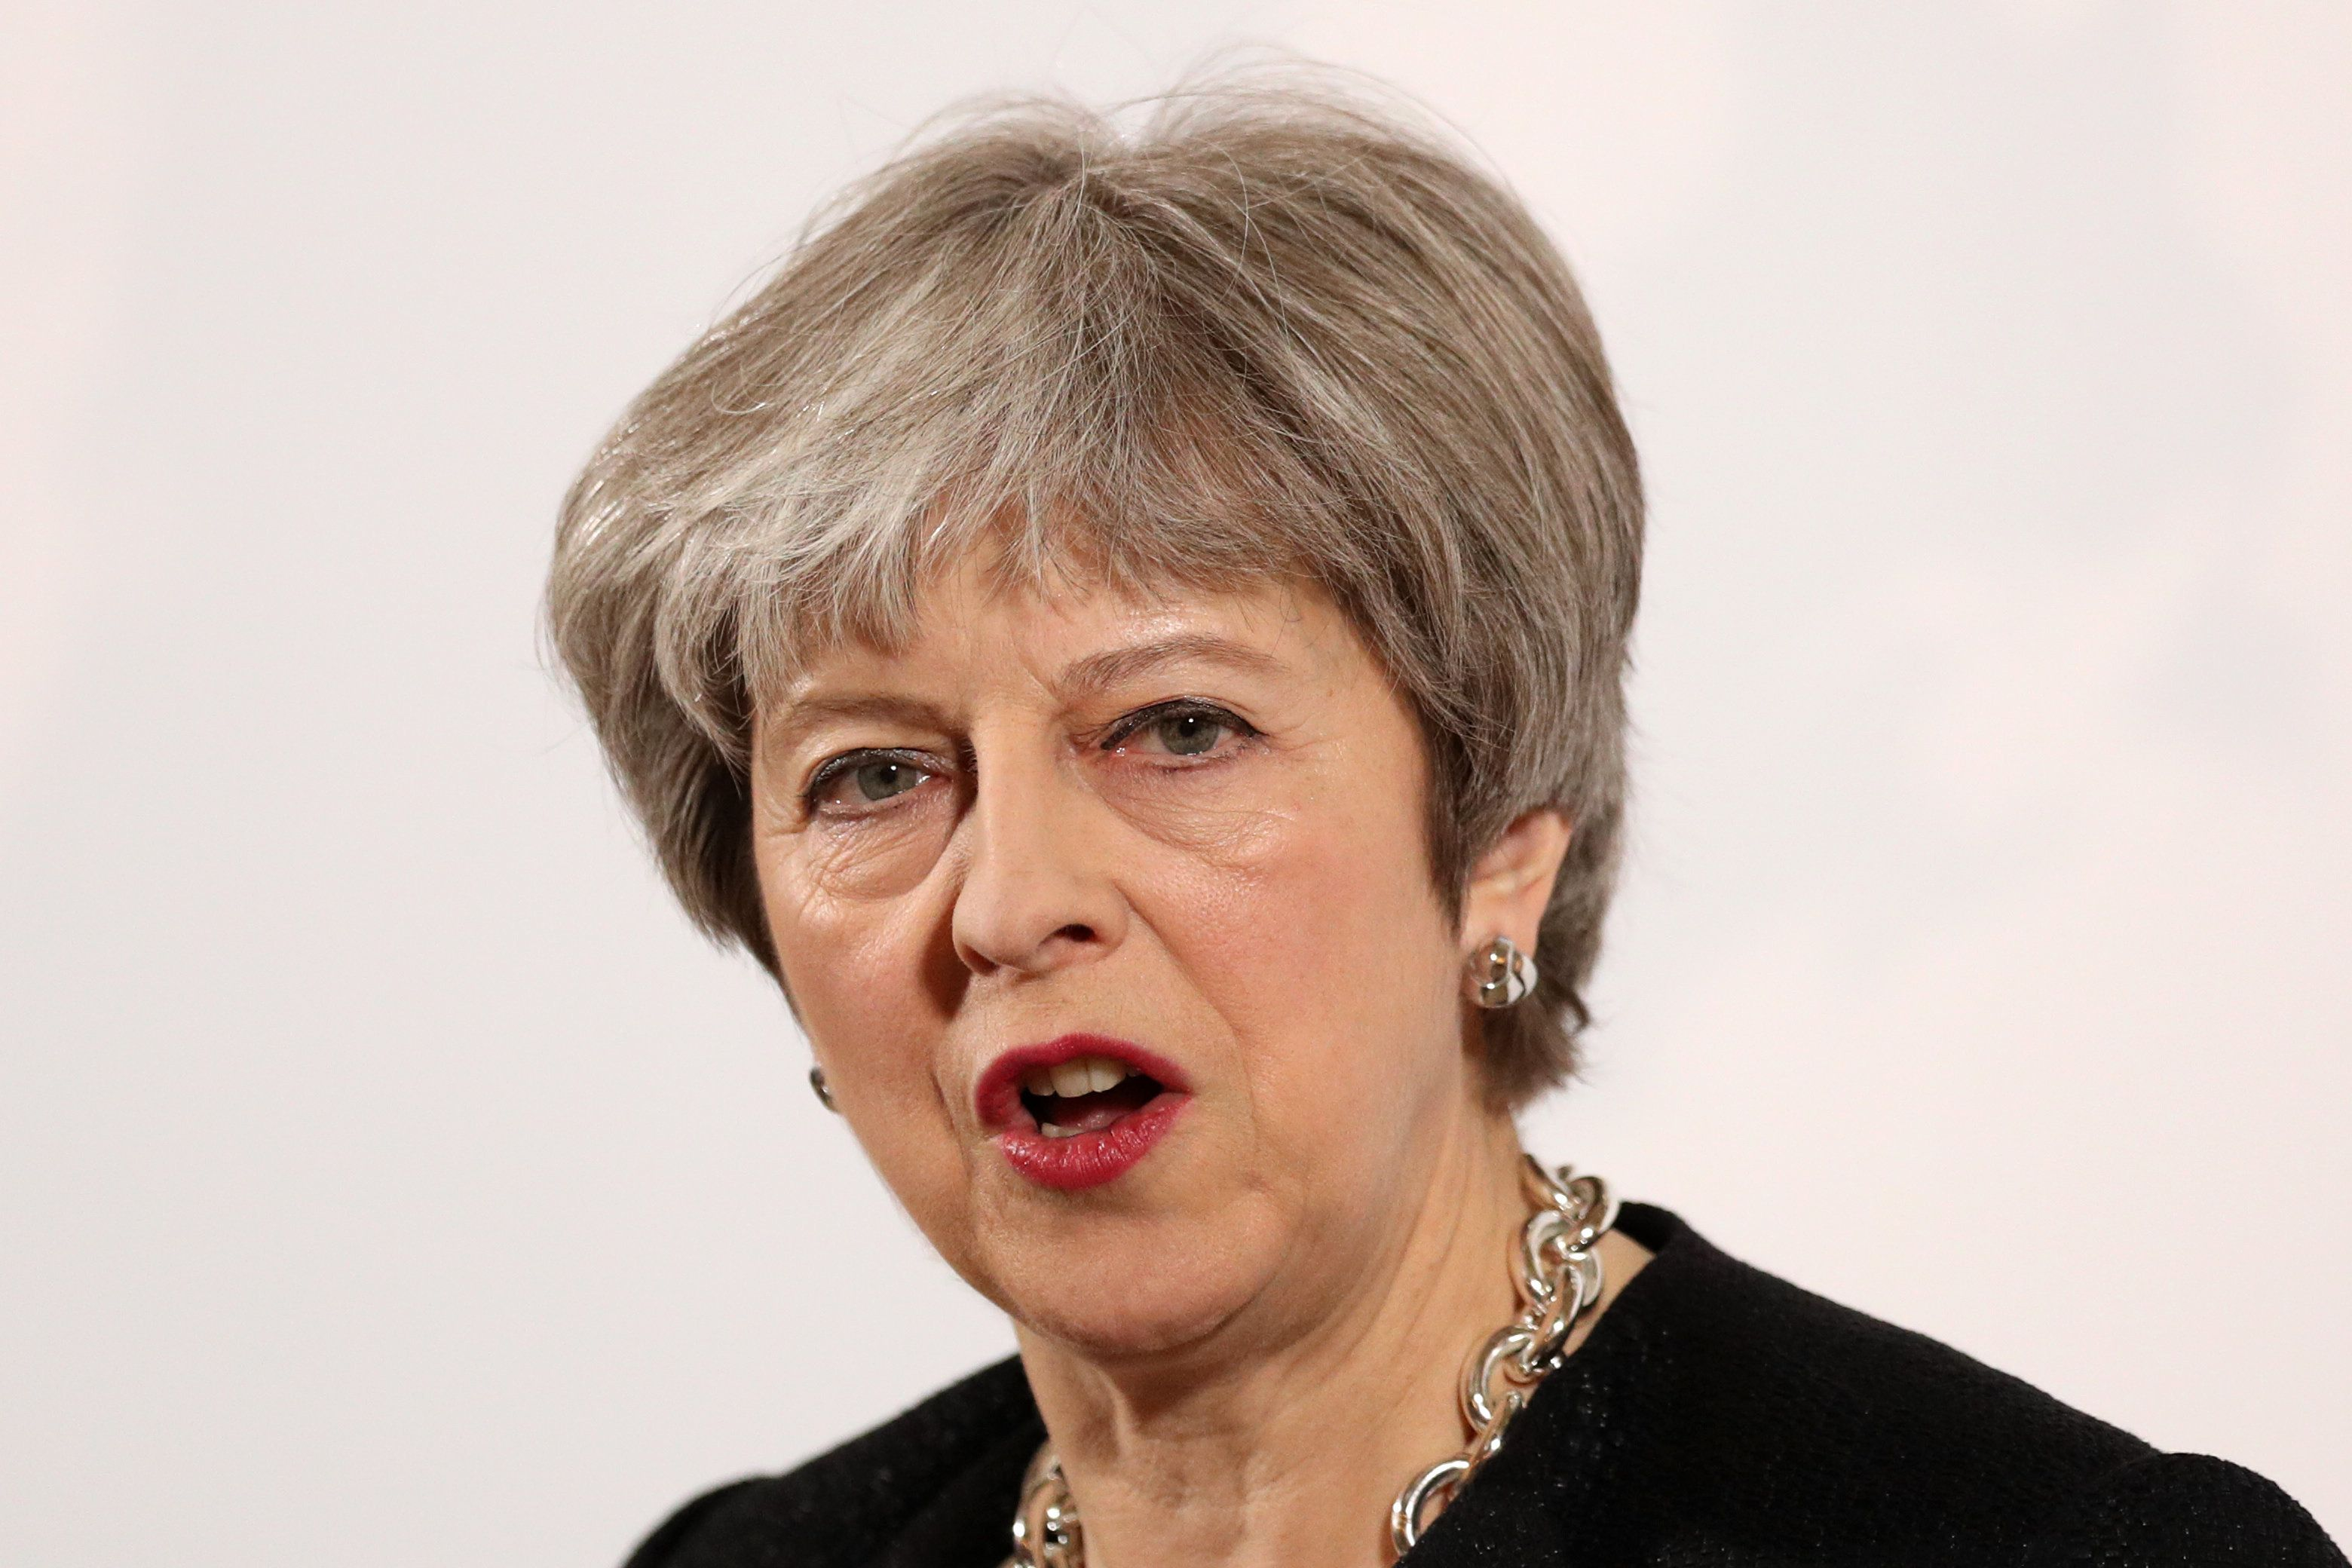 PM speech on housing to set out changes to planning rules